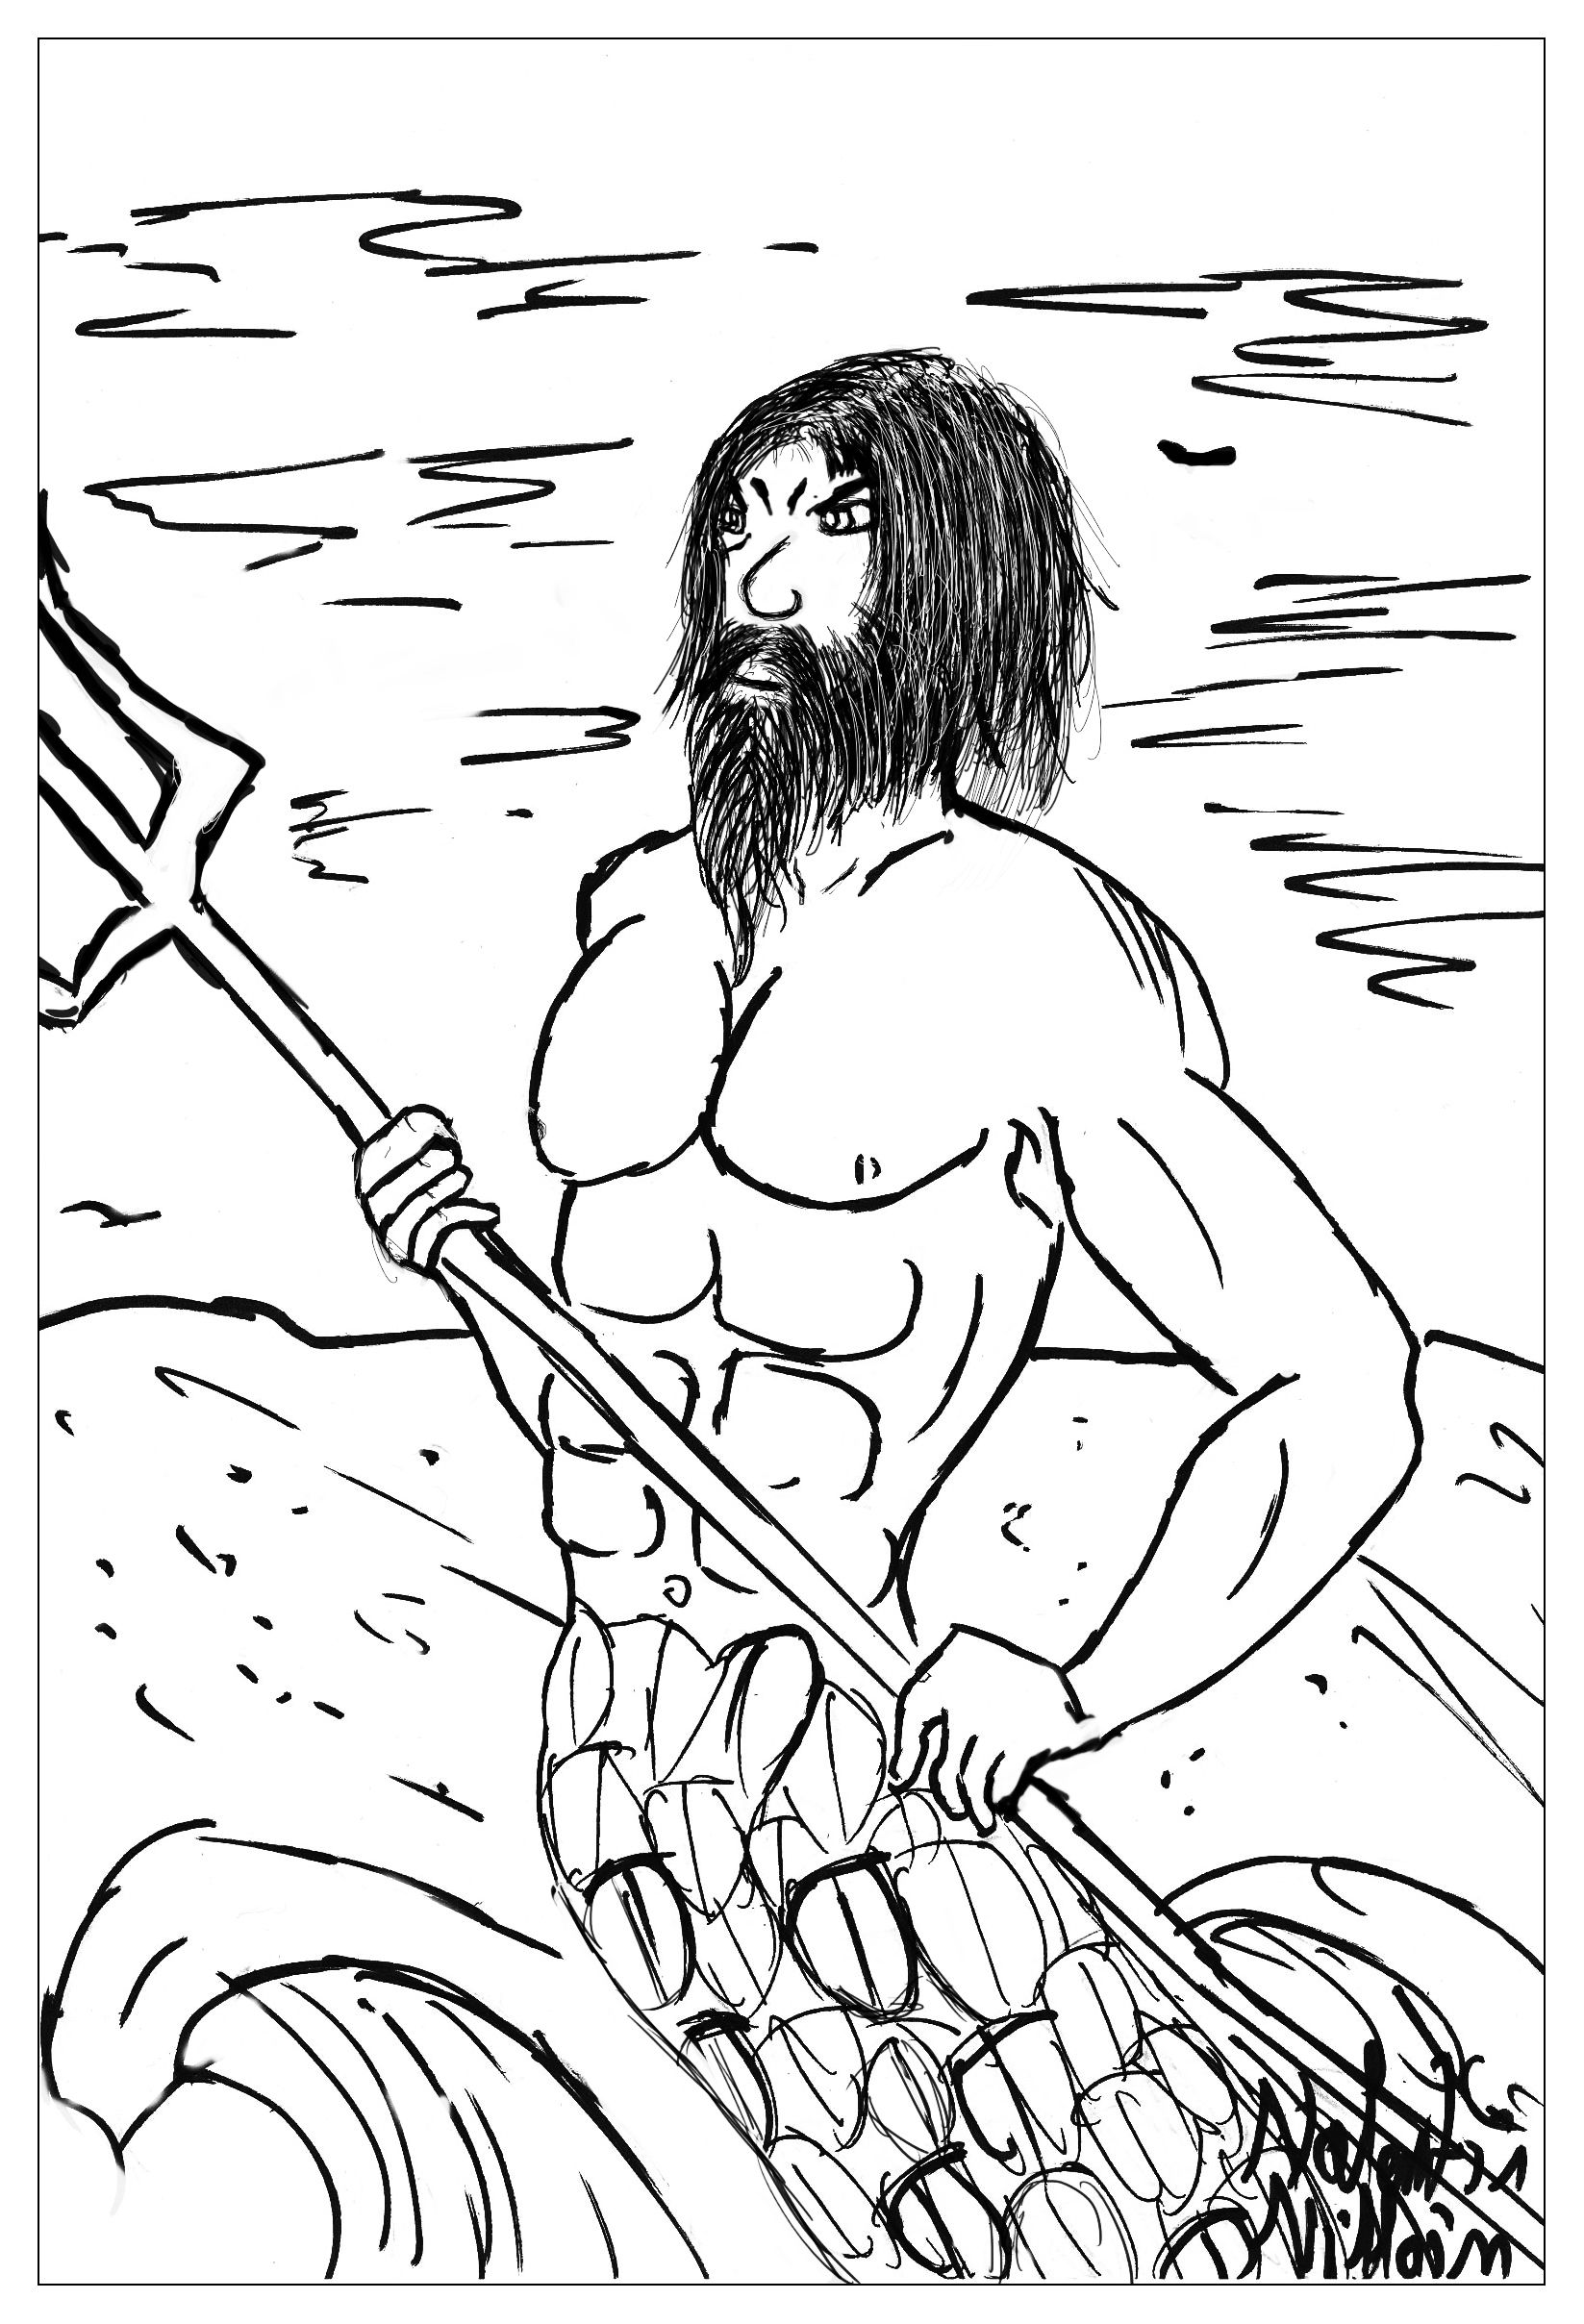 Poseidon The God Of Sea And Ocean In A Coloring Page From The